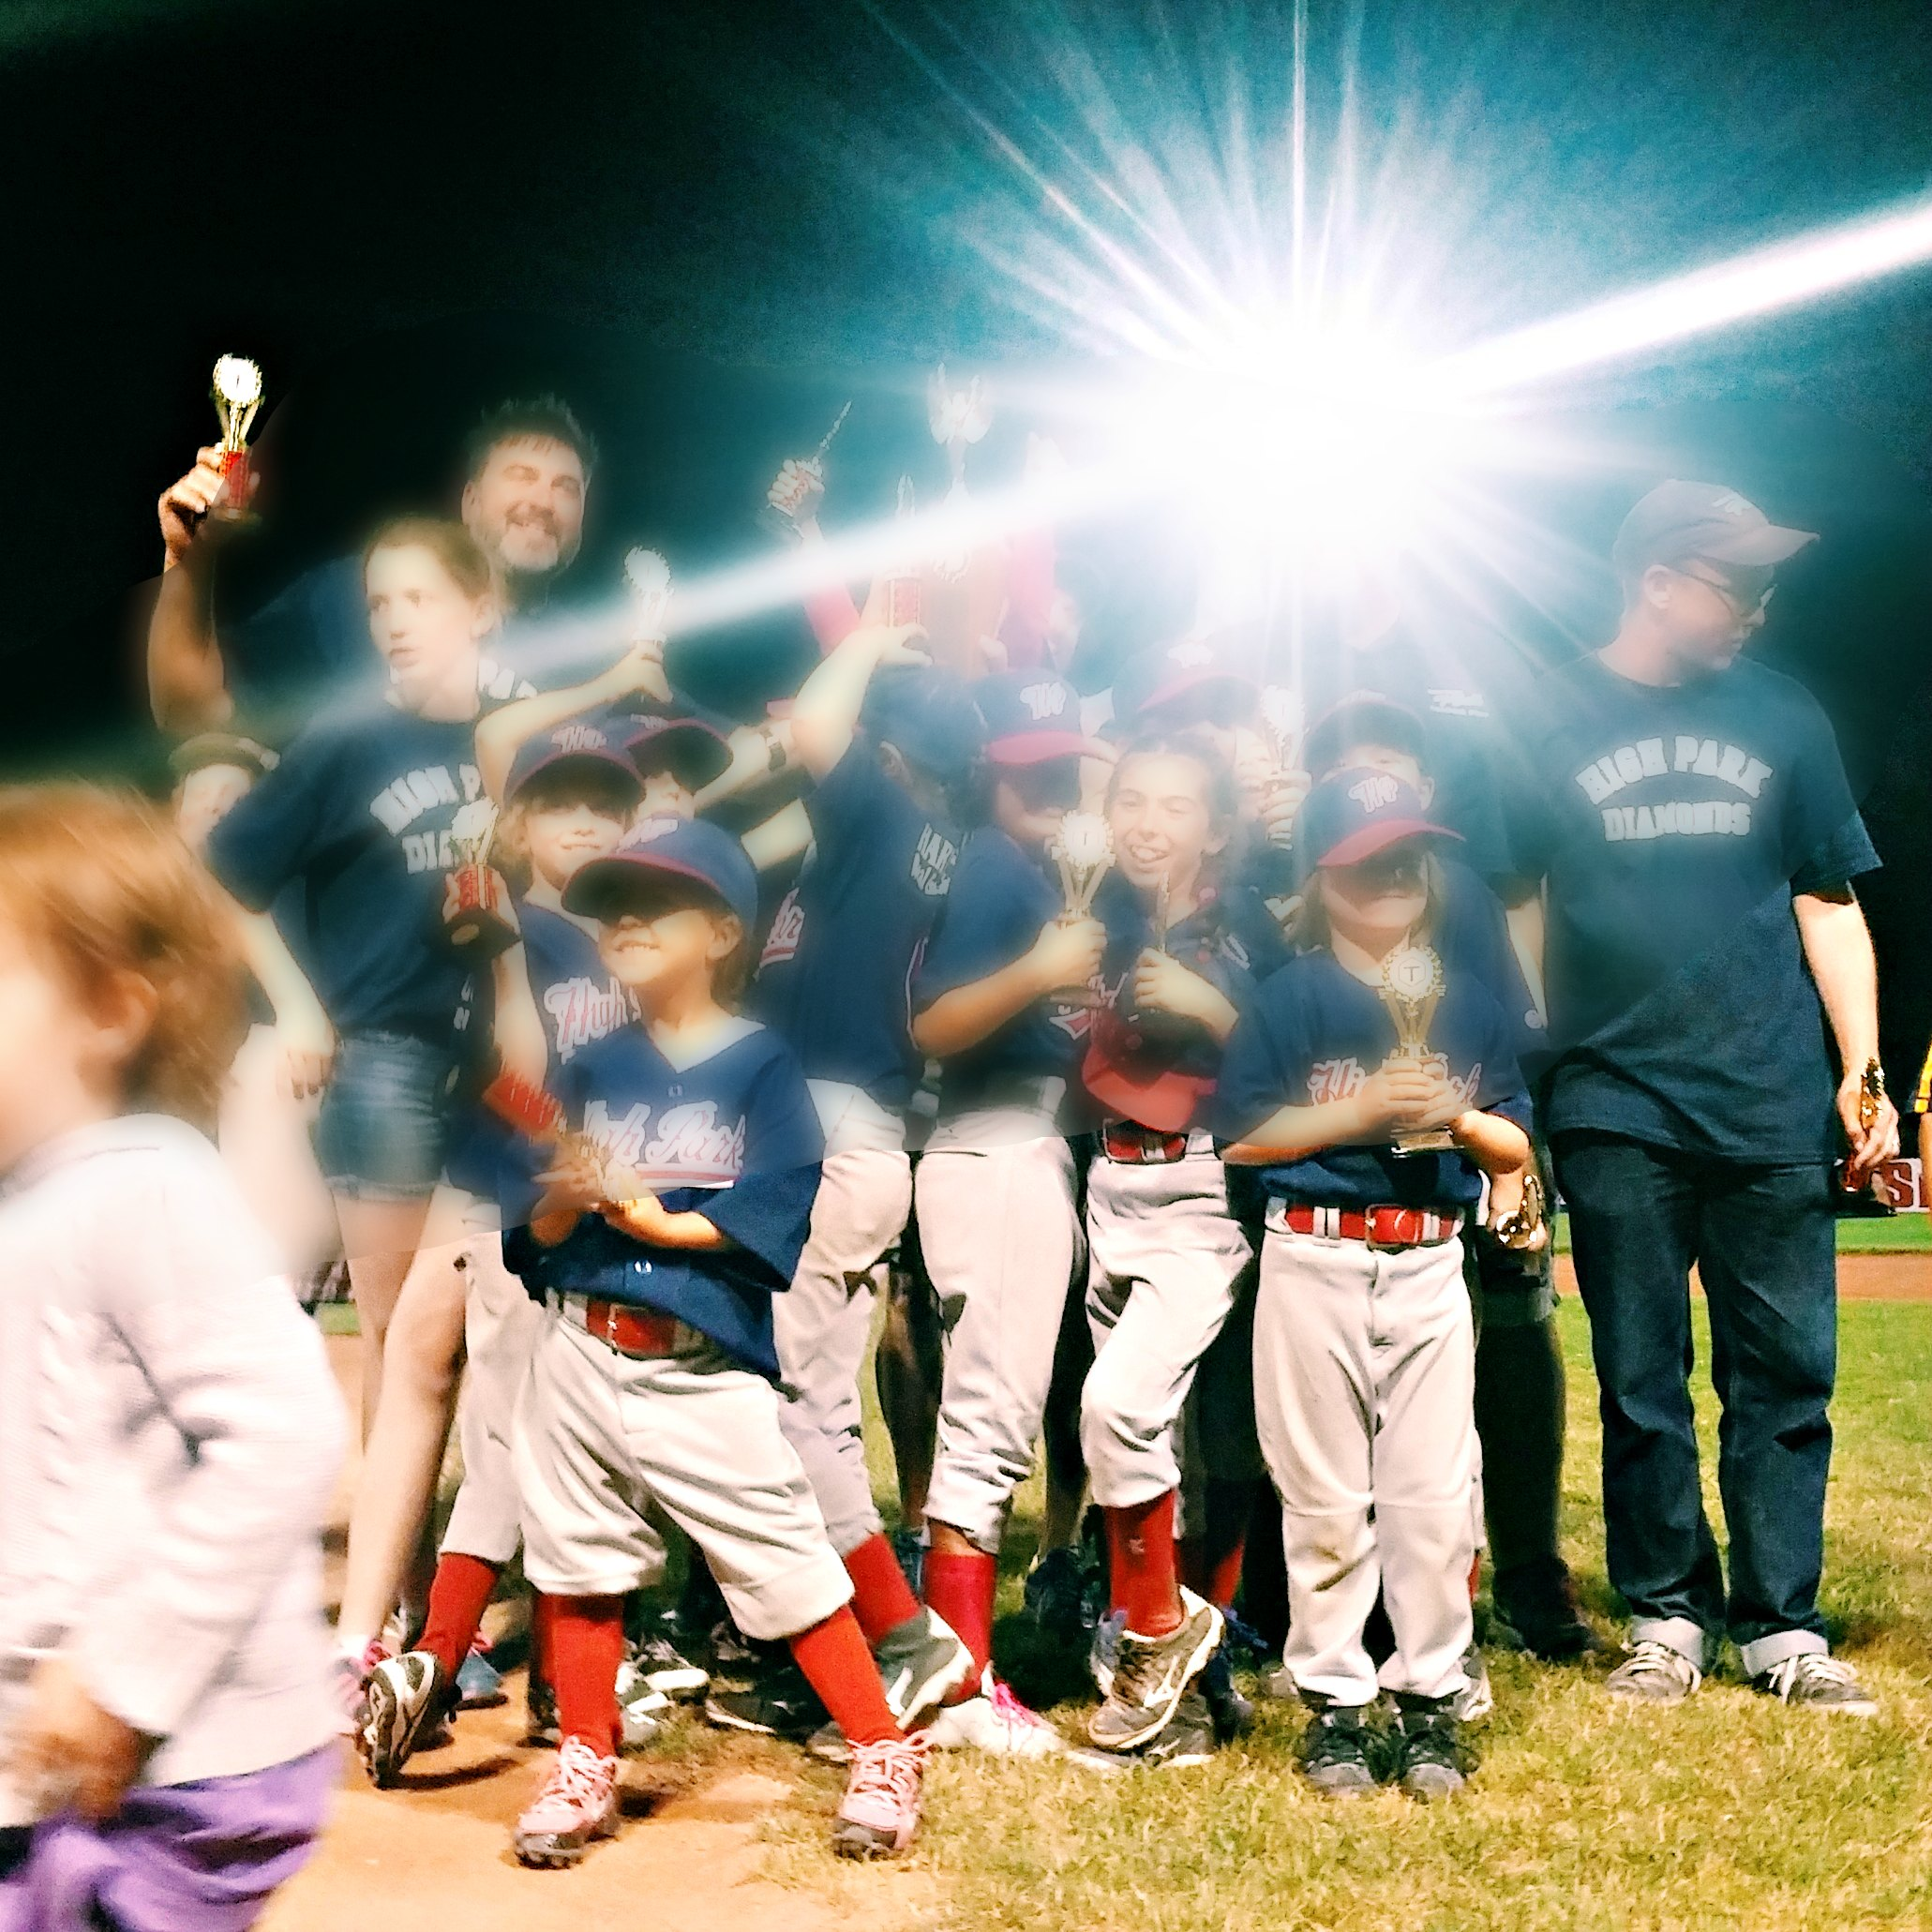 t-ball moments